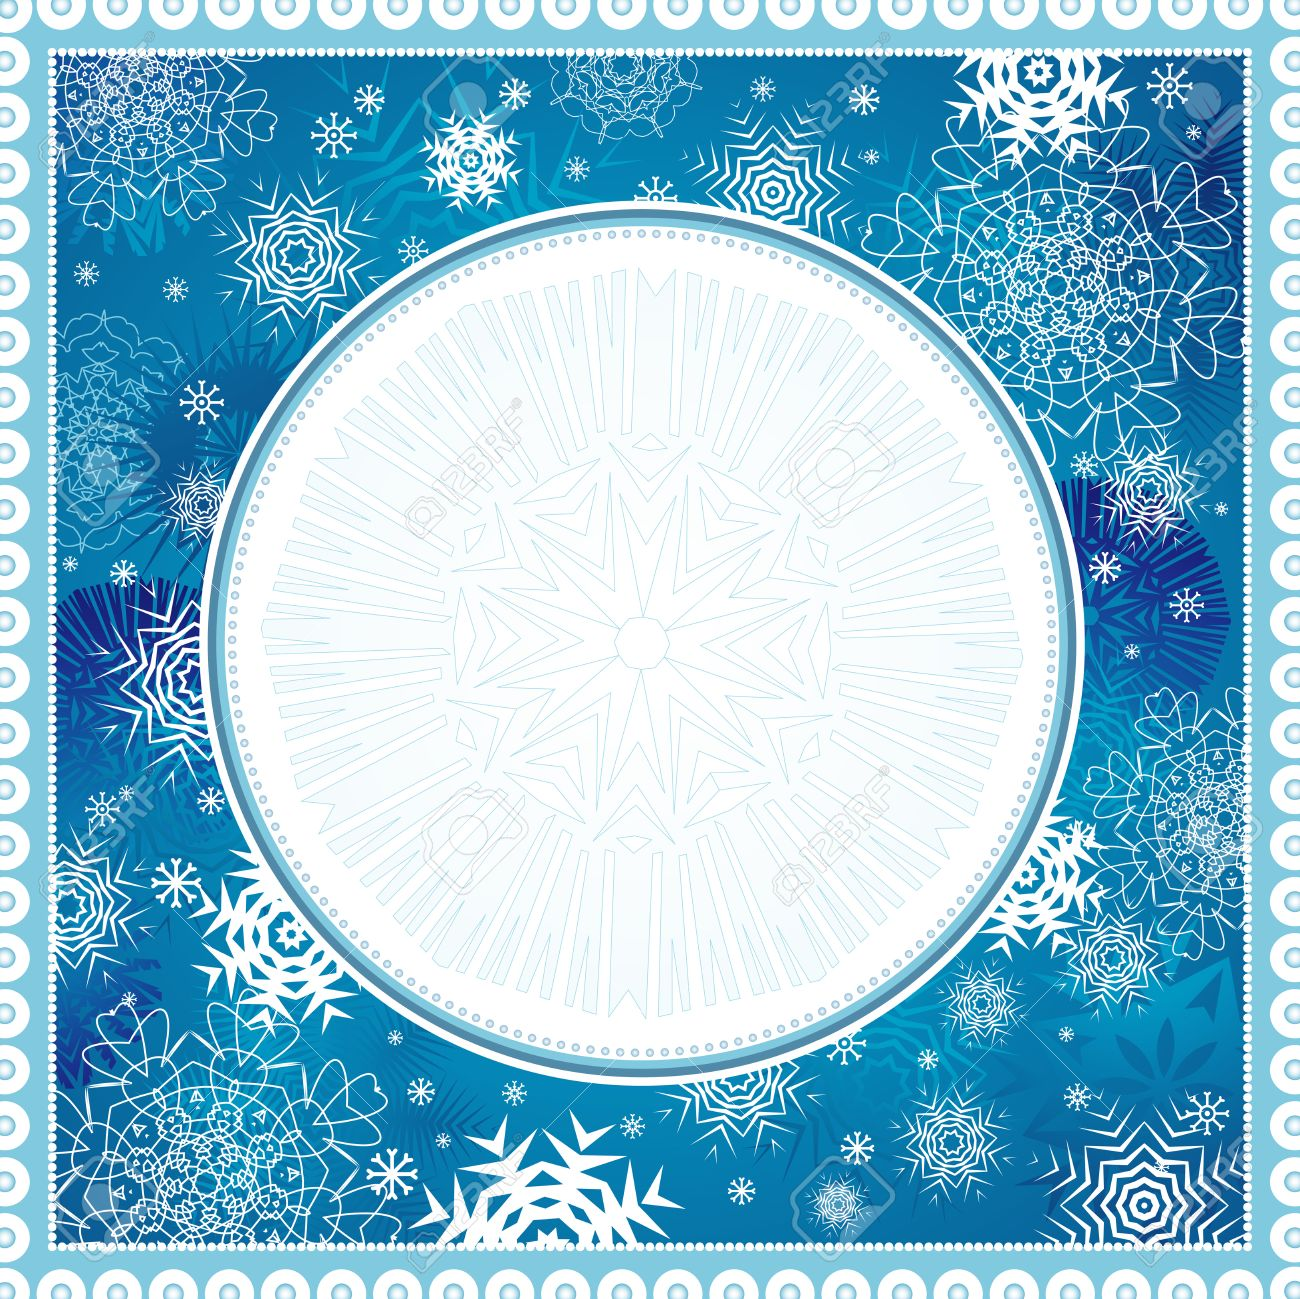 Blue, New, Eve, Cold, Xmas, Card, Snow, Year, Flake, Curve, Paint.